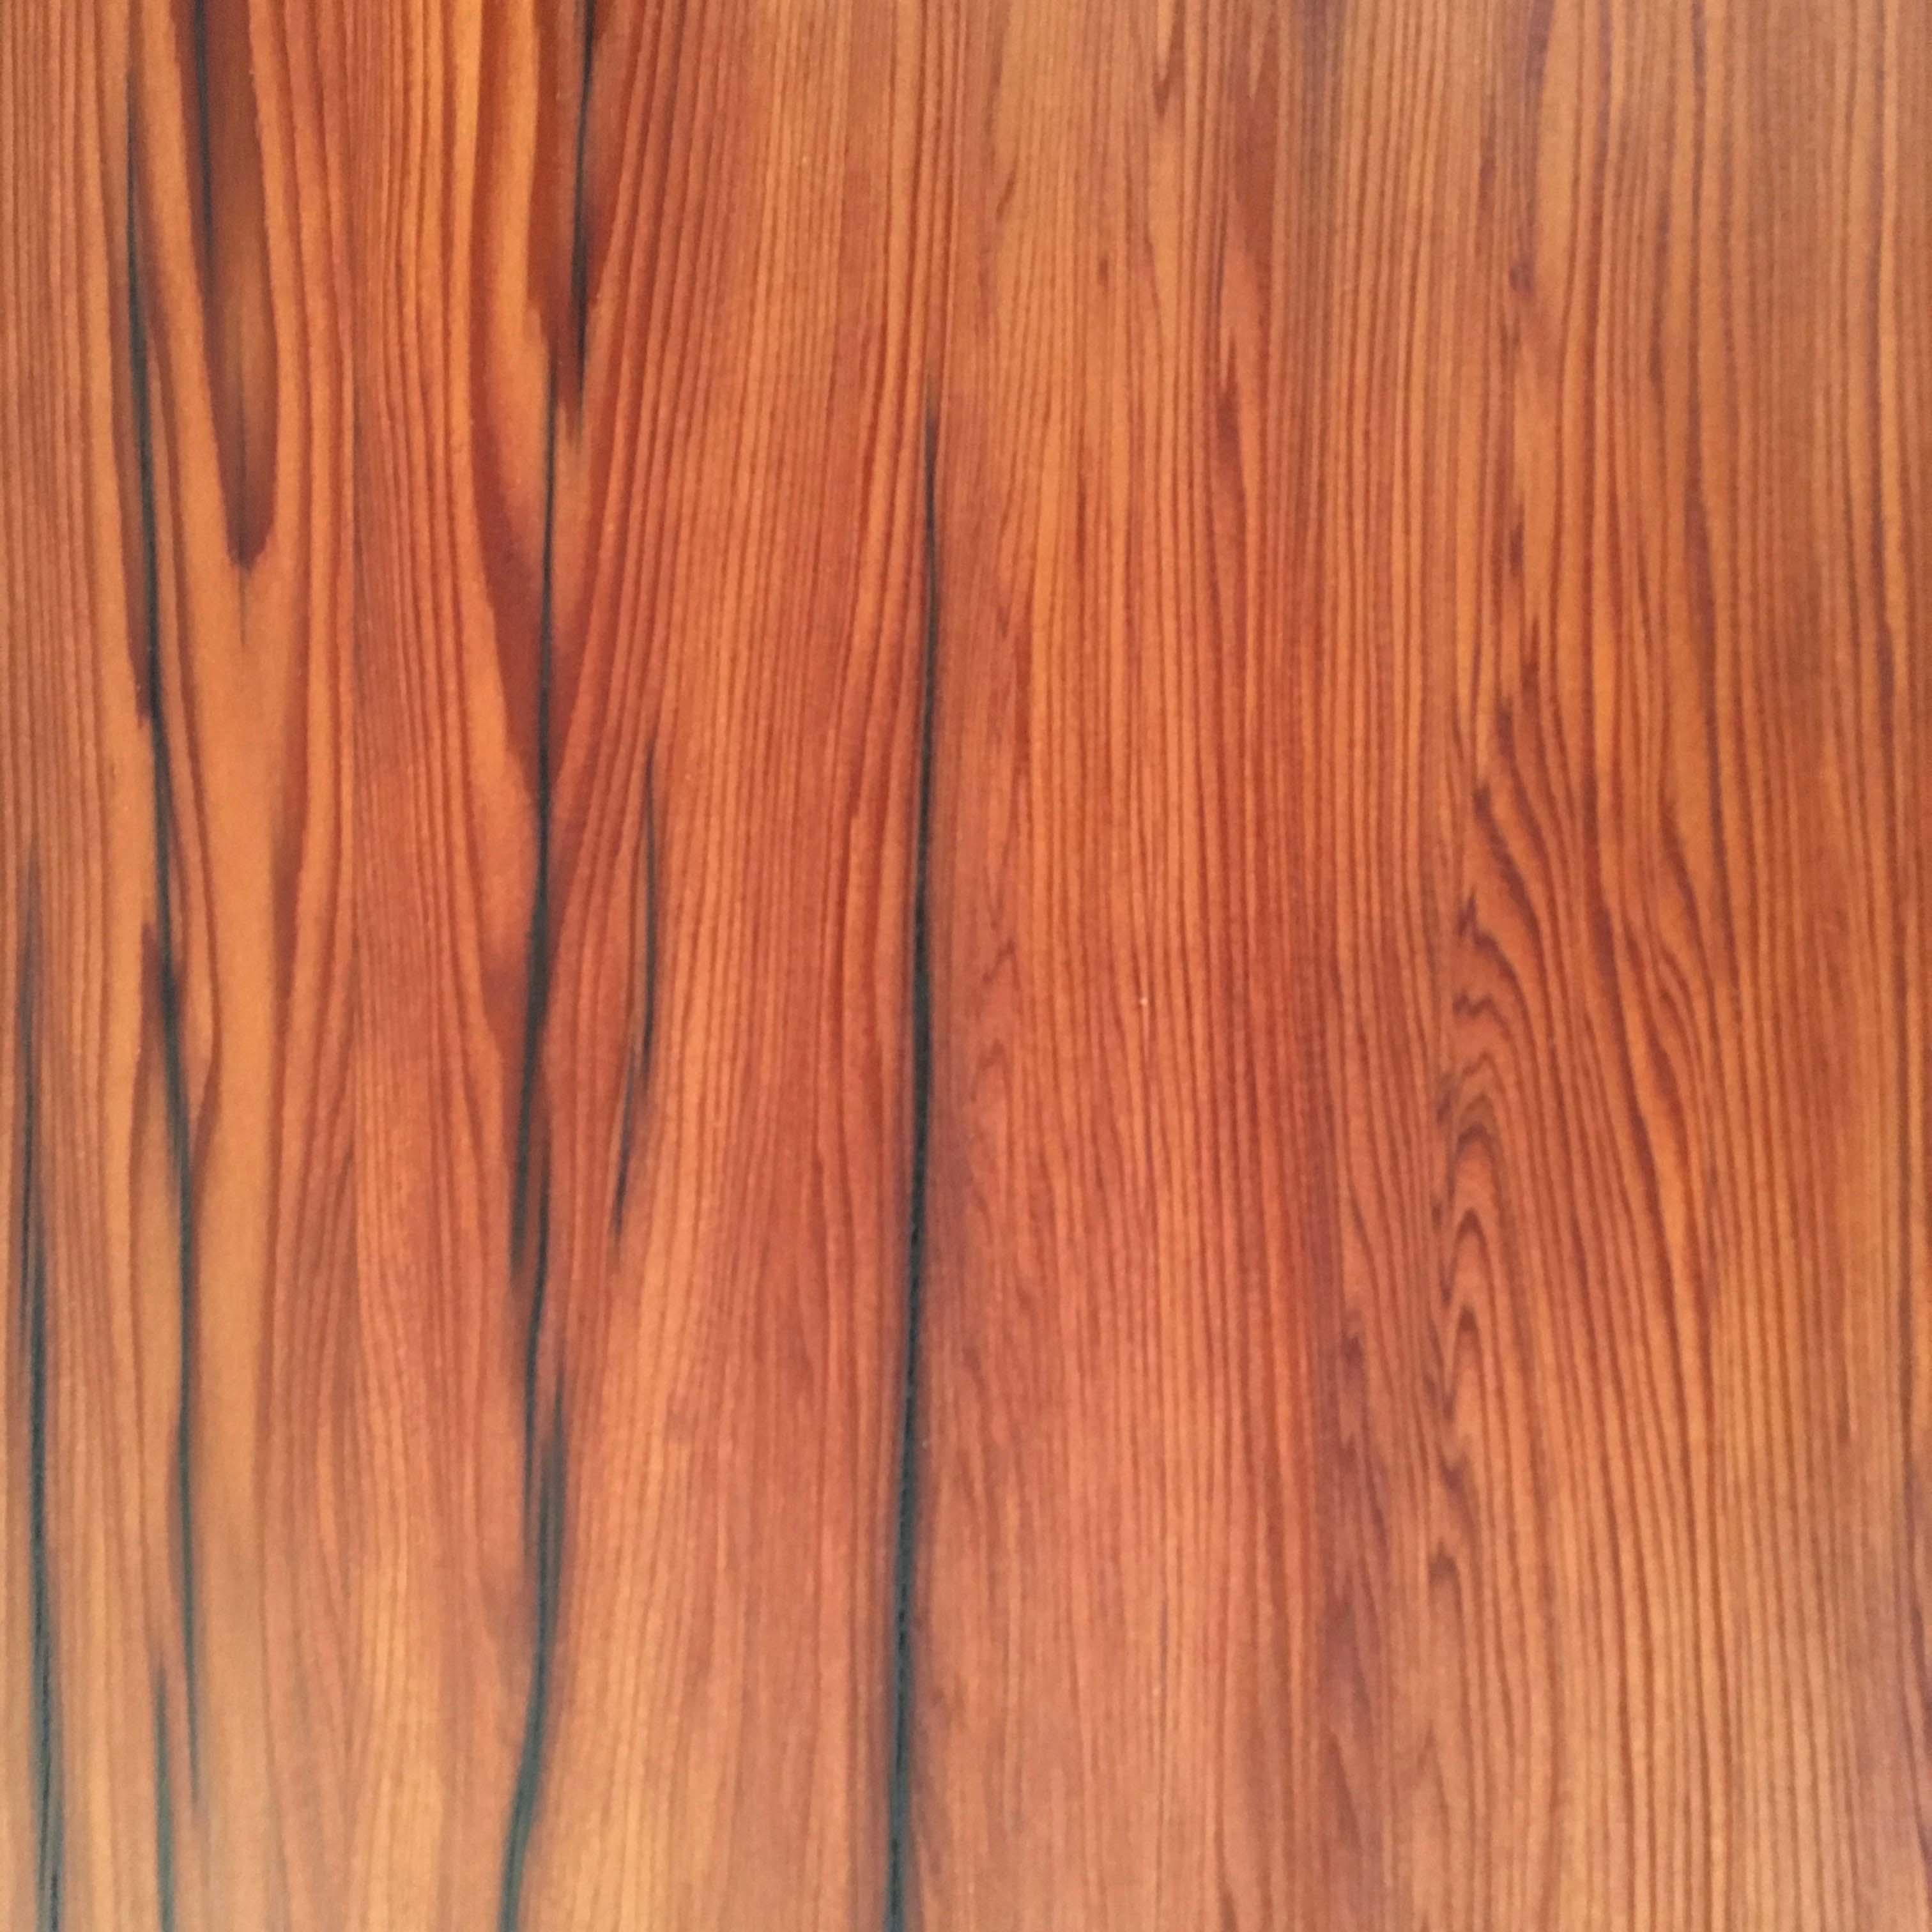 surfaced redwood beams02 - Vintage Reclaimed Redwood